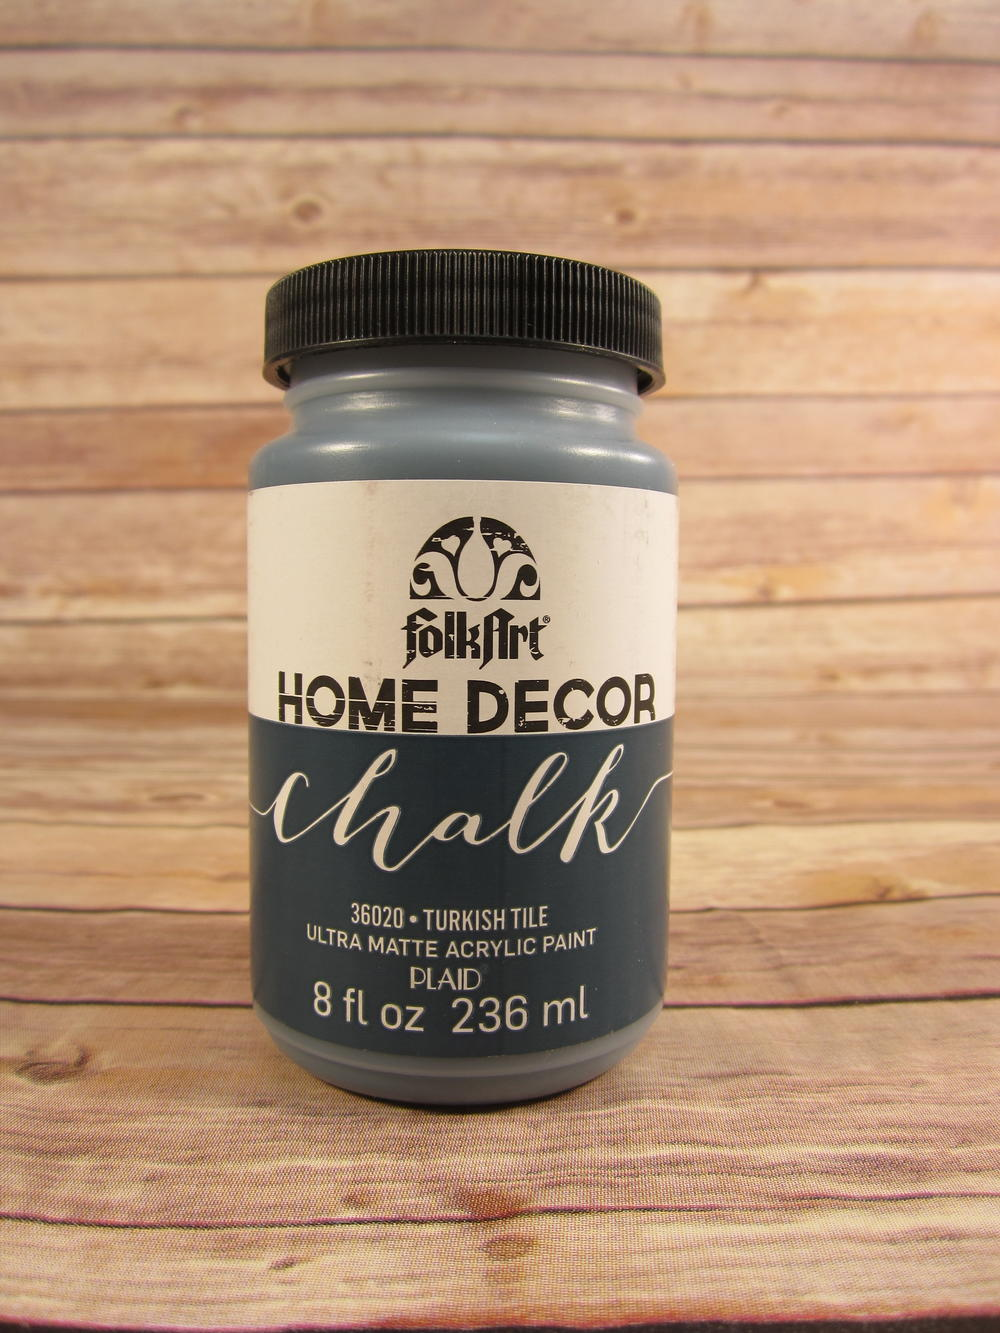 folk art home decor chalk paint favecraftscom - Home Decor Chalk Paint